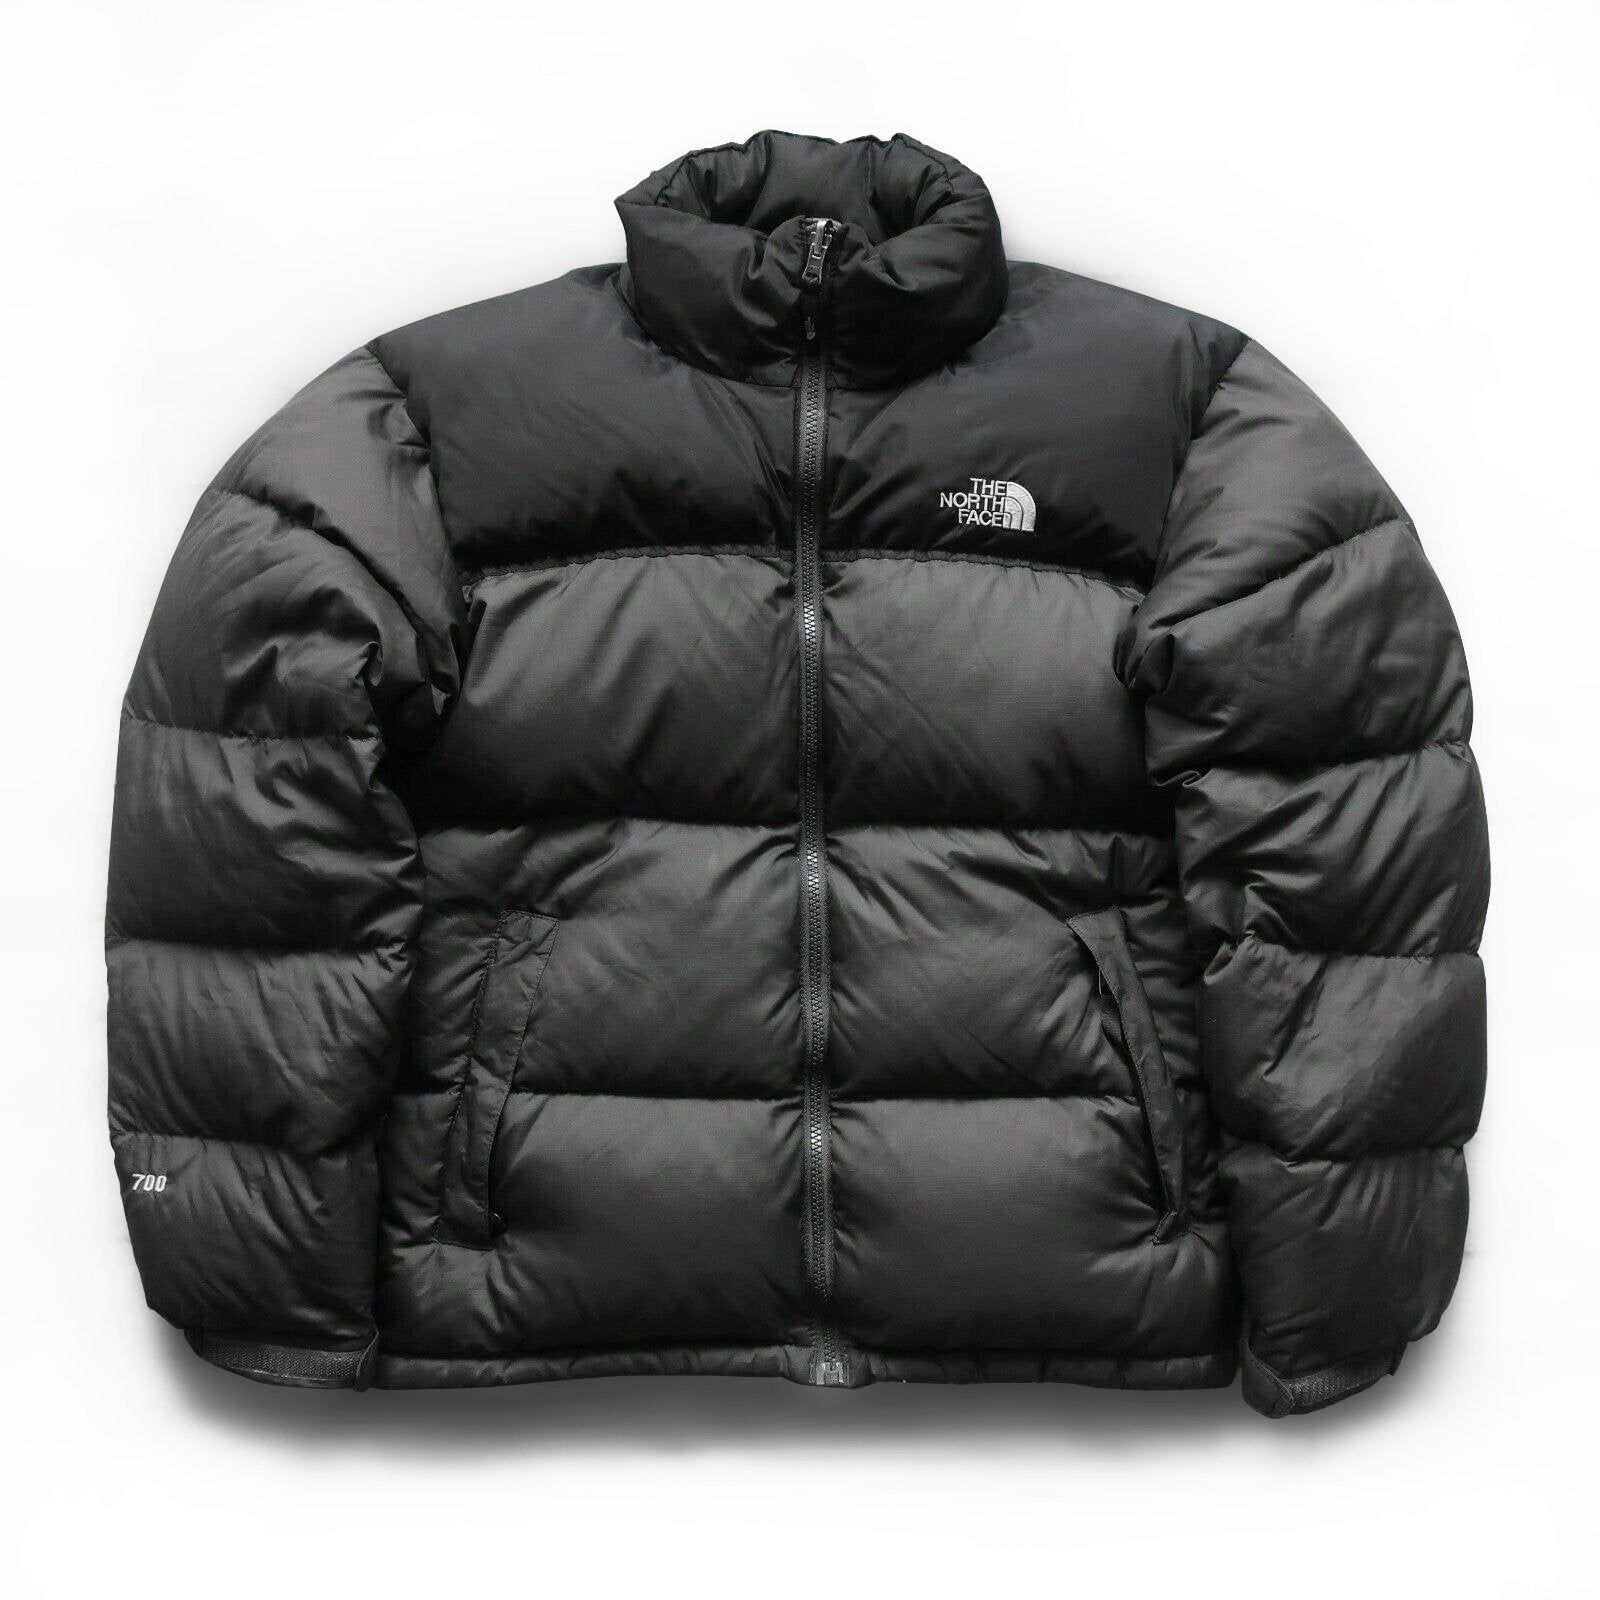 Vintage The North Face 700 Down Nuptse Puffer Jacket Black And Gray Sz M North Face 700 Puffer Jacket Black The North Face [ 1600 x 1600 Pixel ]